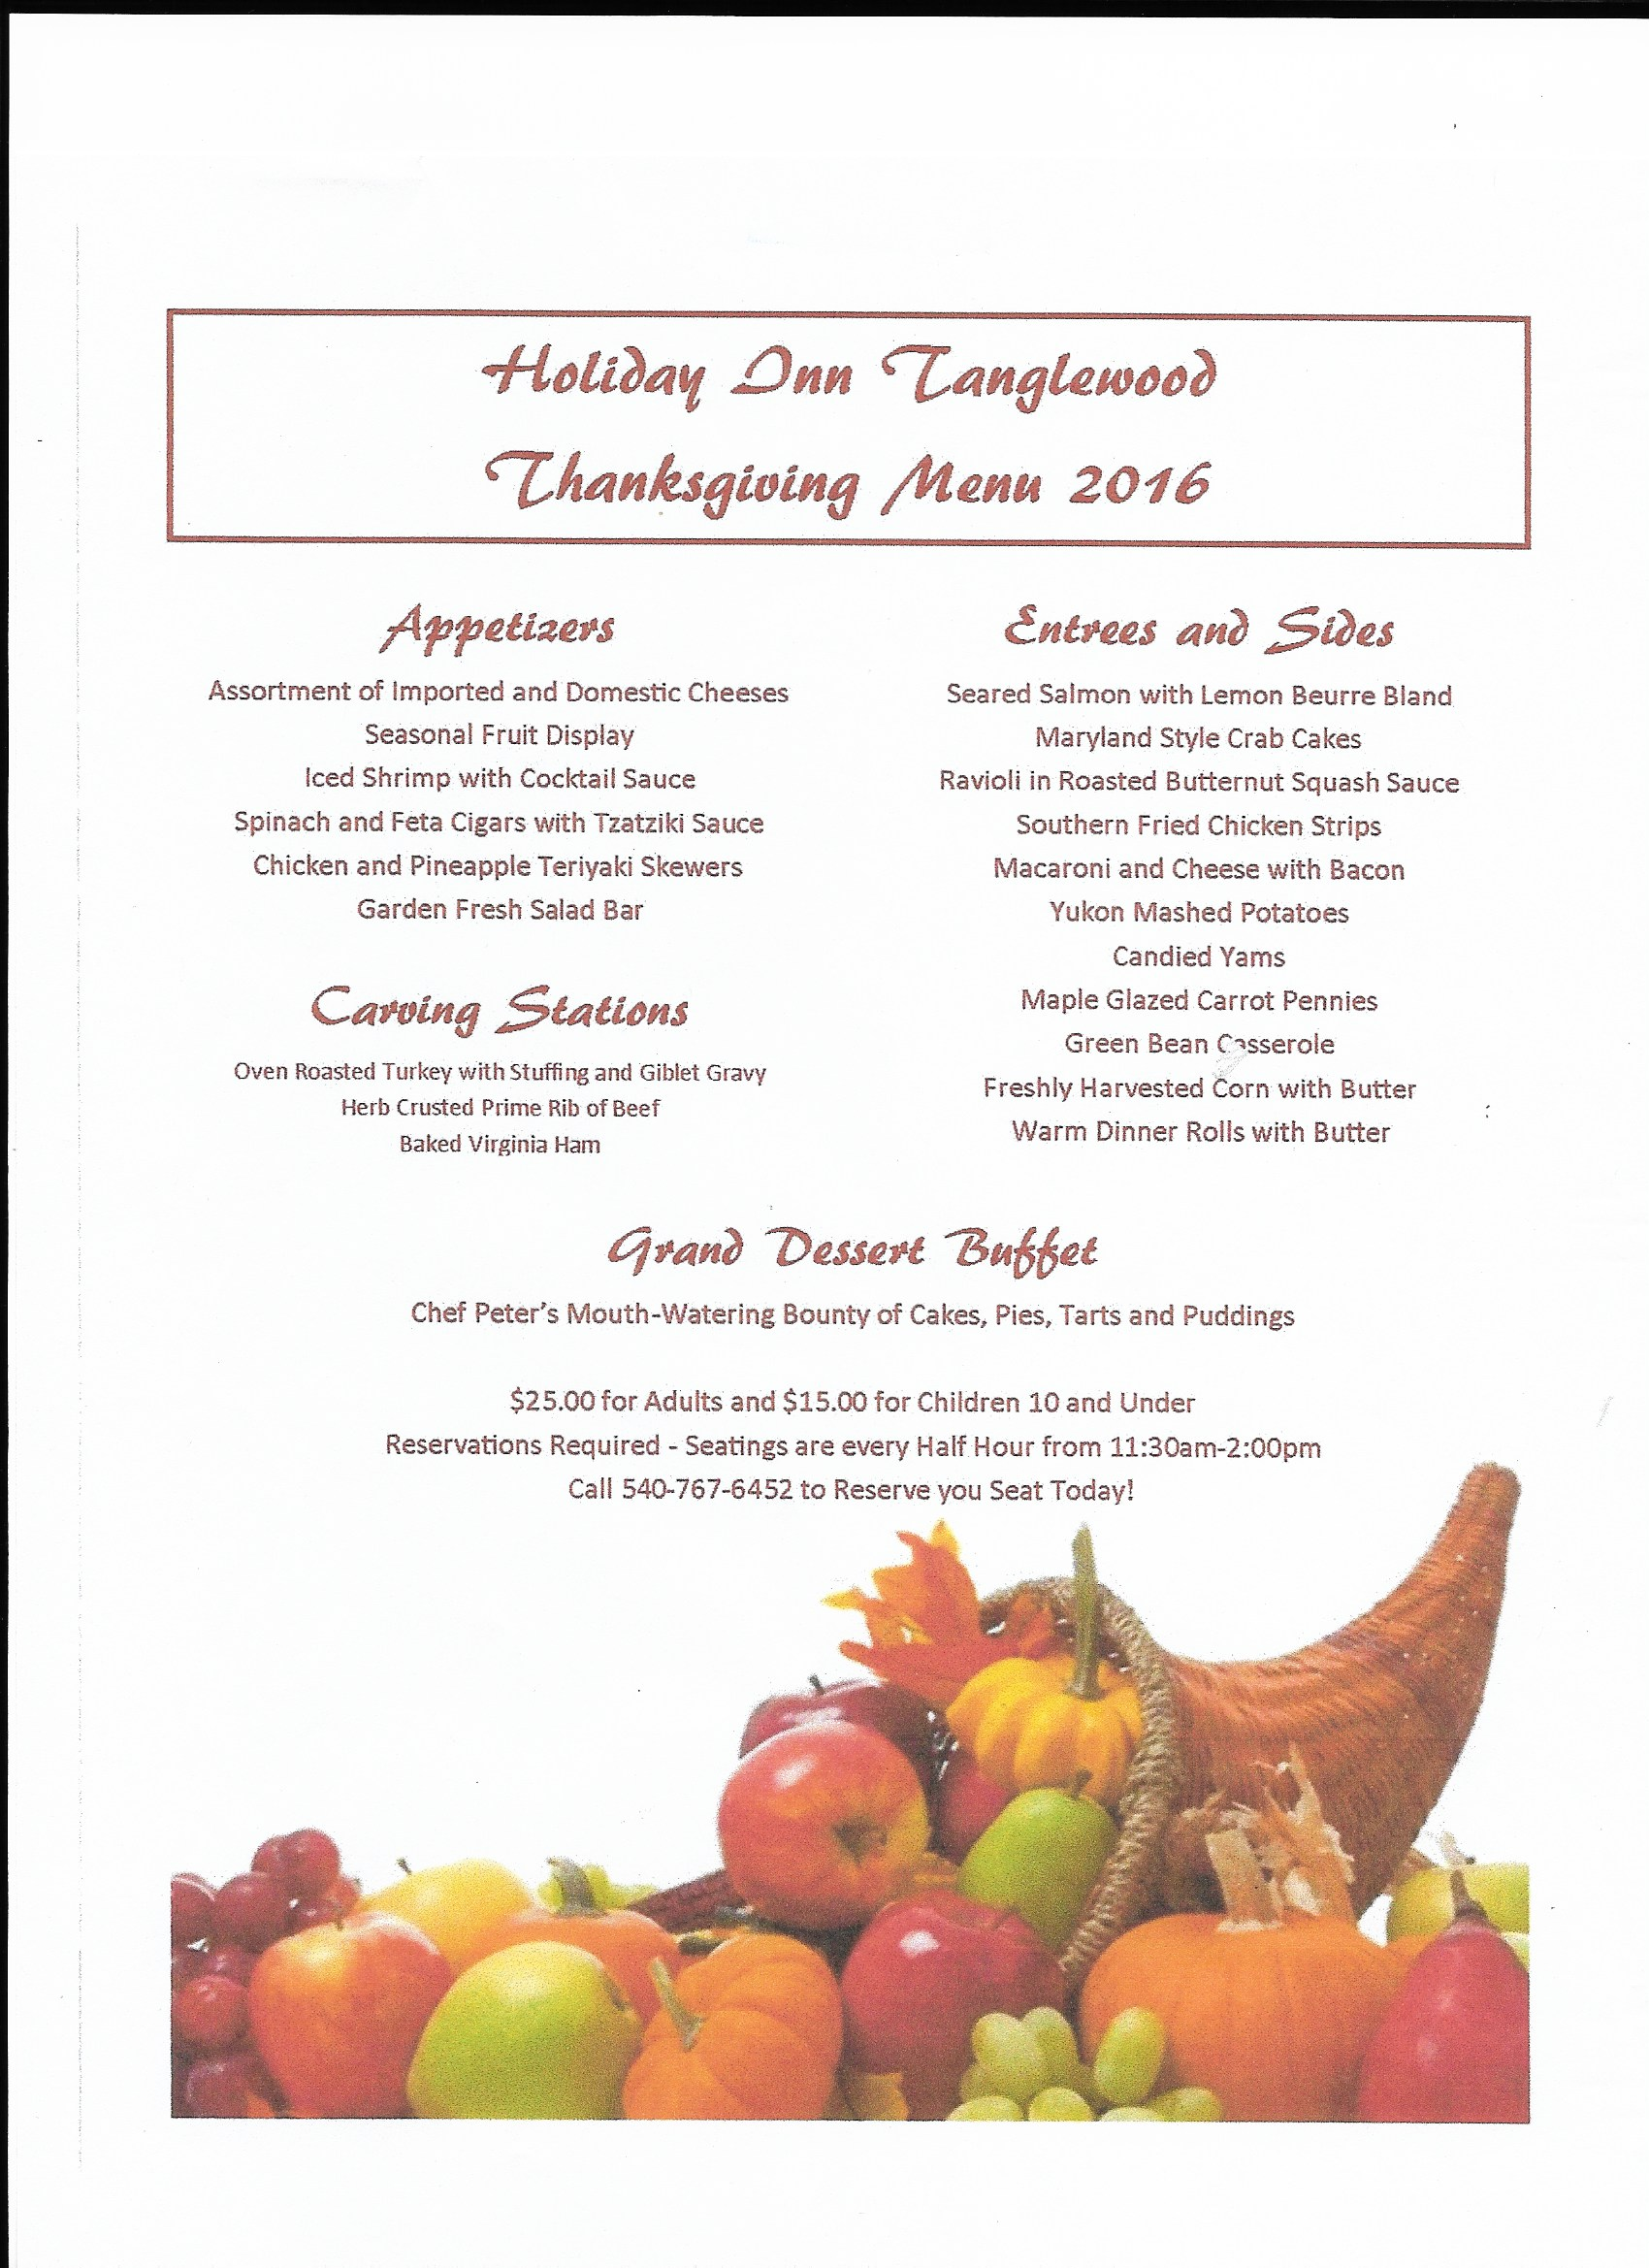 Hotel Roanoke Thanksgiving